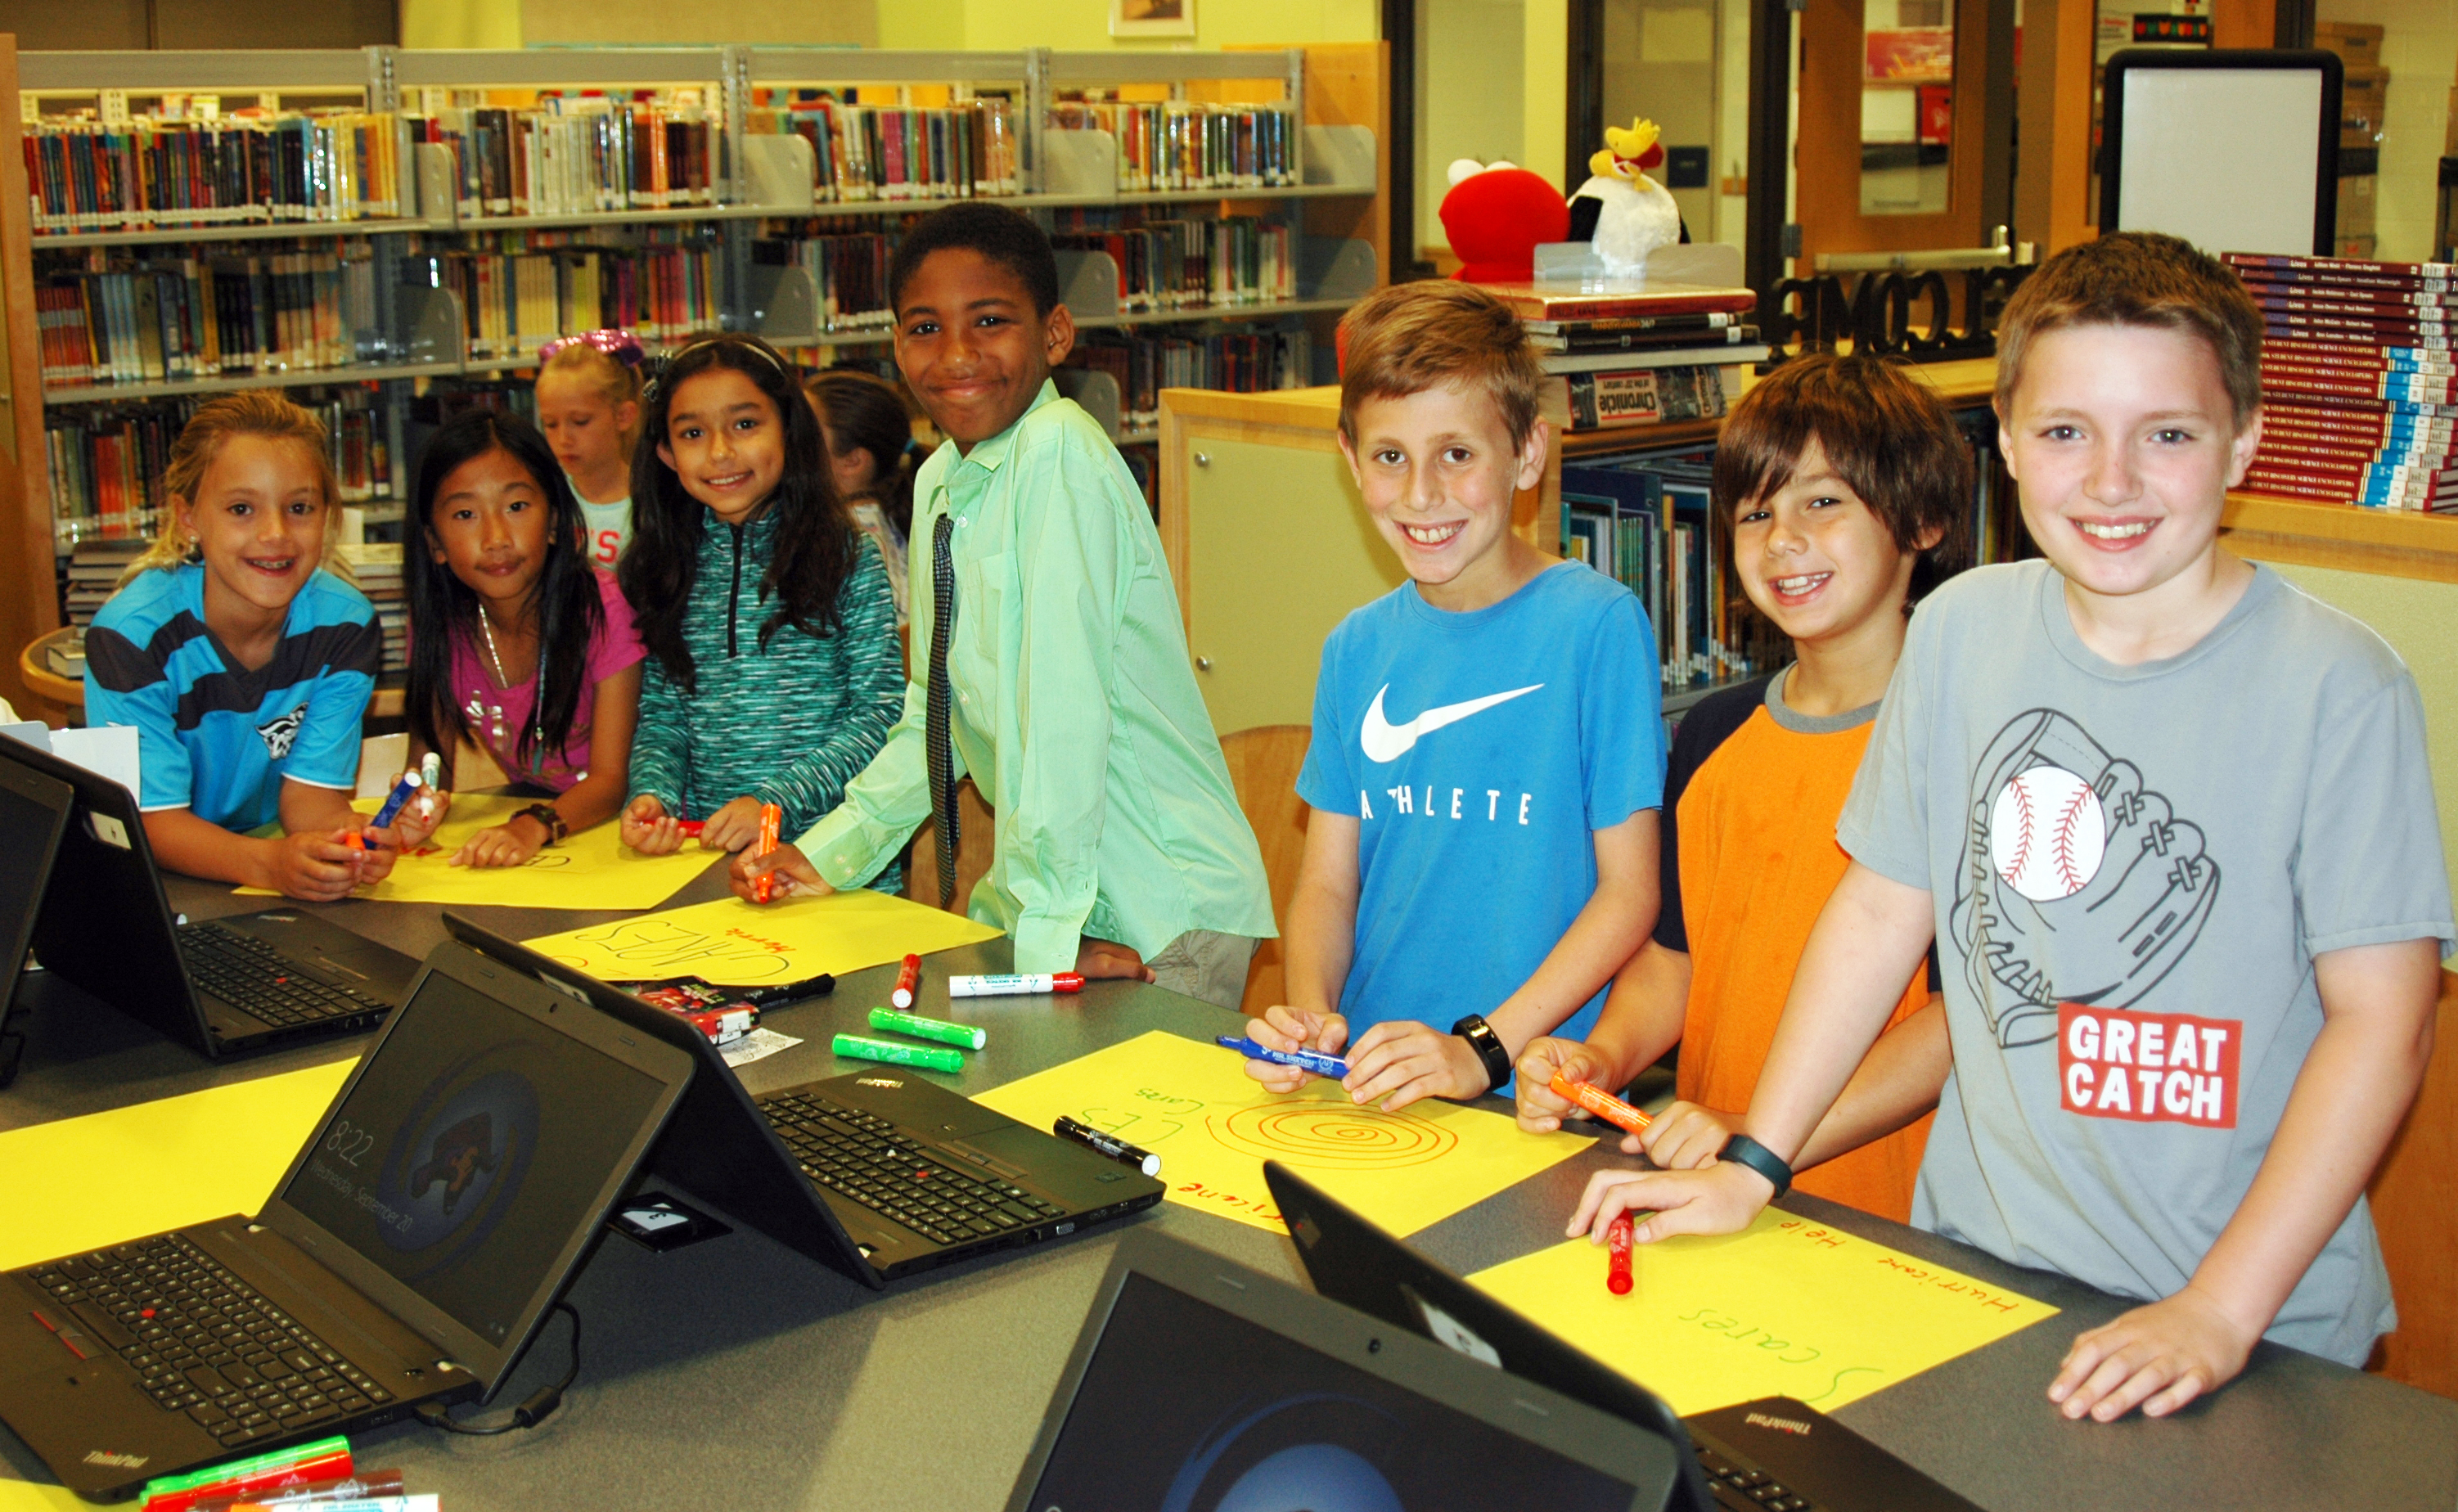 Seven elementary students taking a break from making posters with markers and construction paper to smile at the camera.